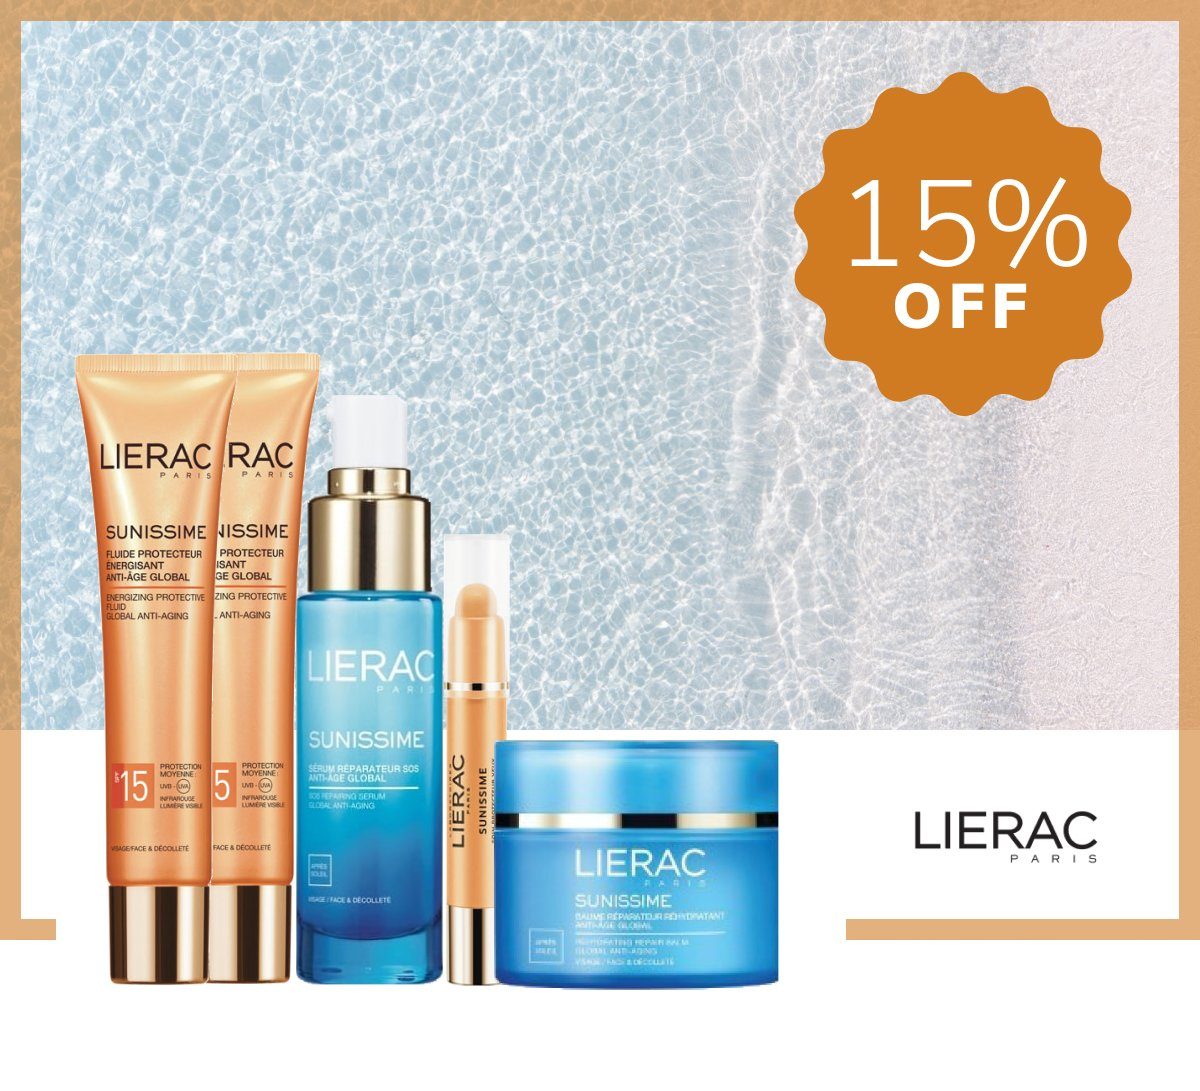 Lierac Sunissime Facial Protection